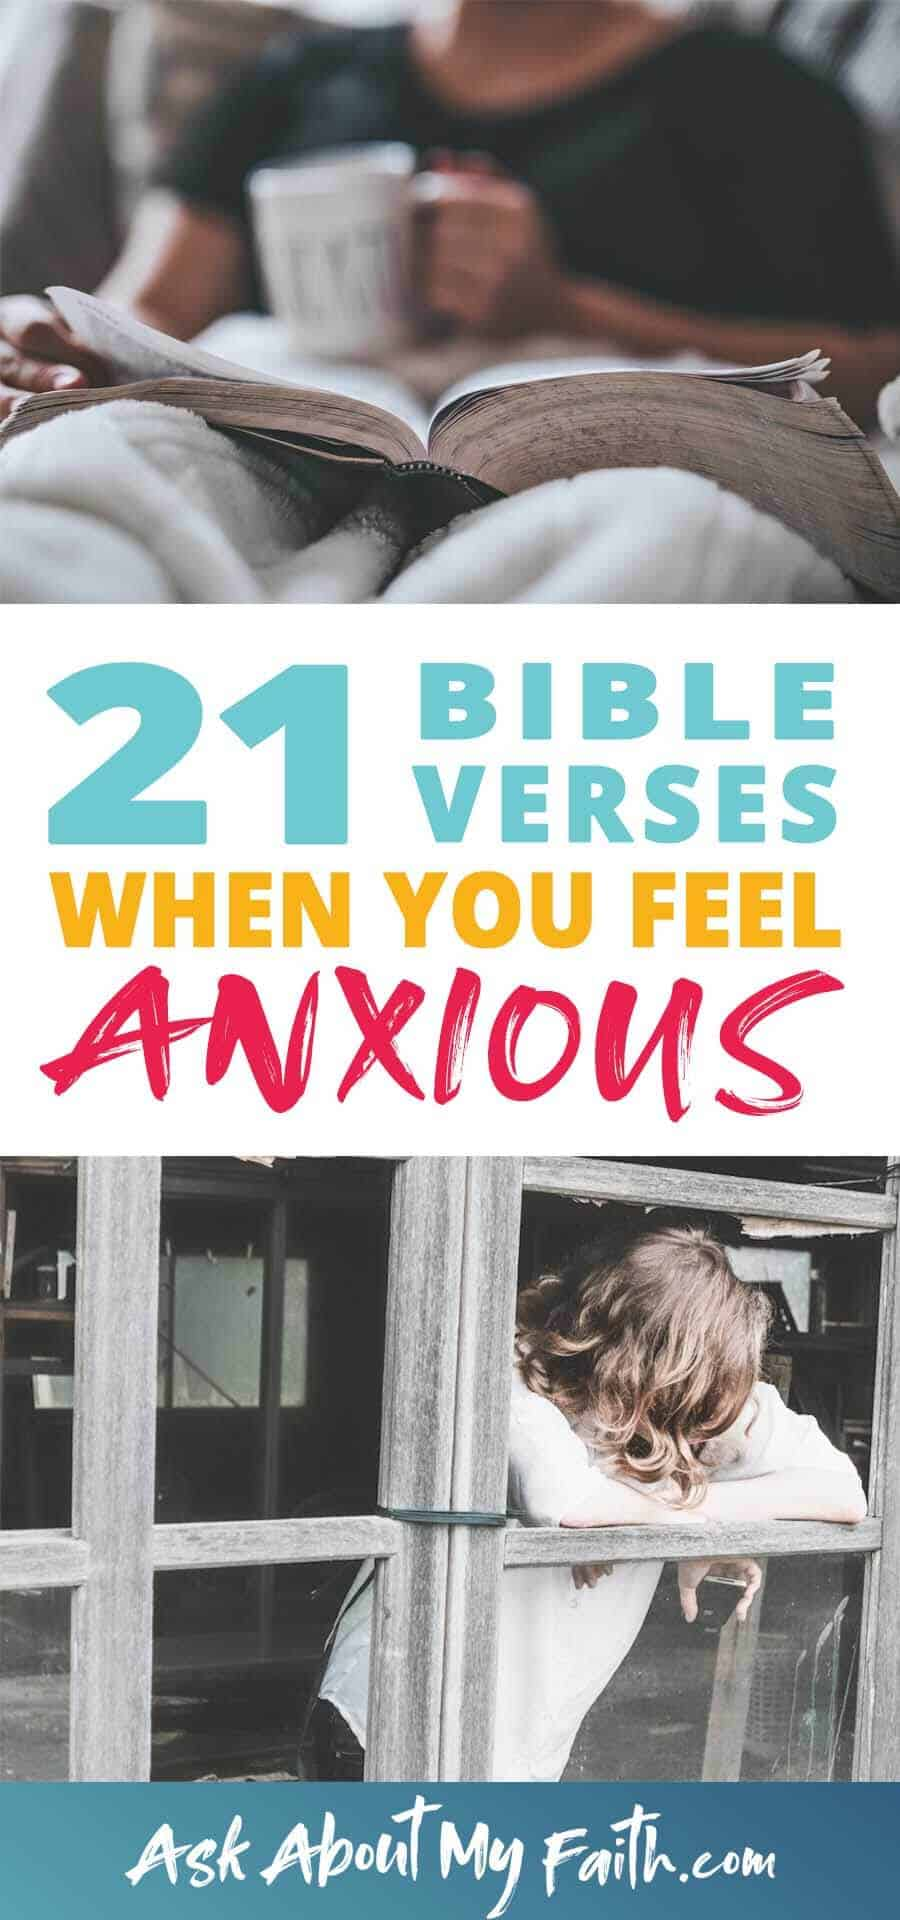 21 Bible Verses When You Feel Worried or Anxious | Bible Study | Christian Faith Resources